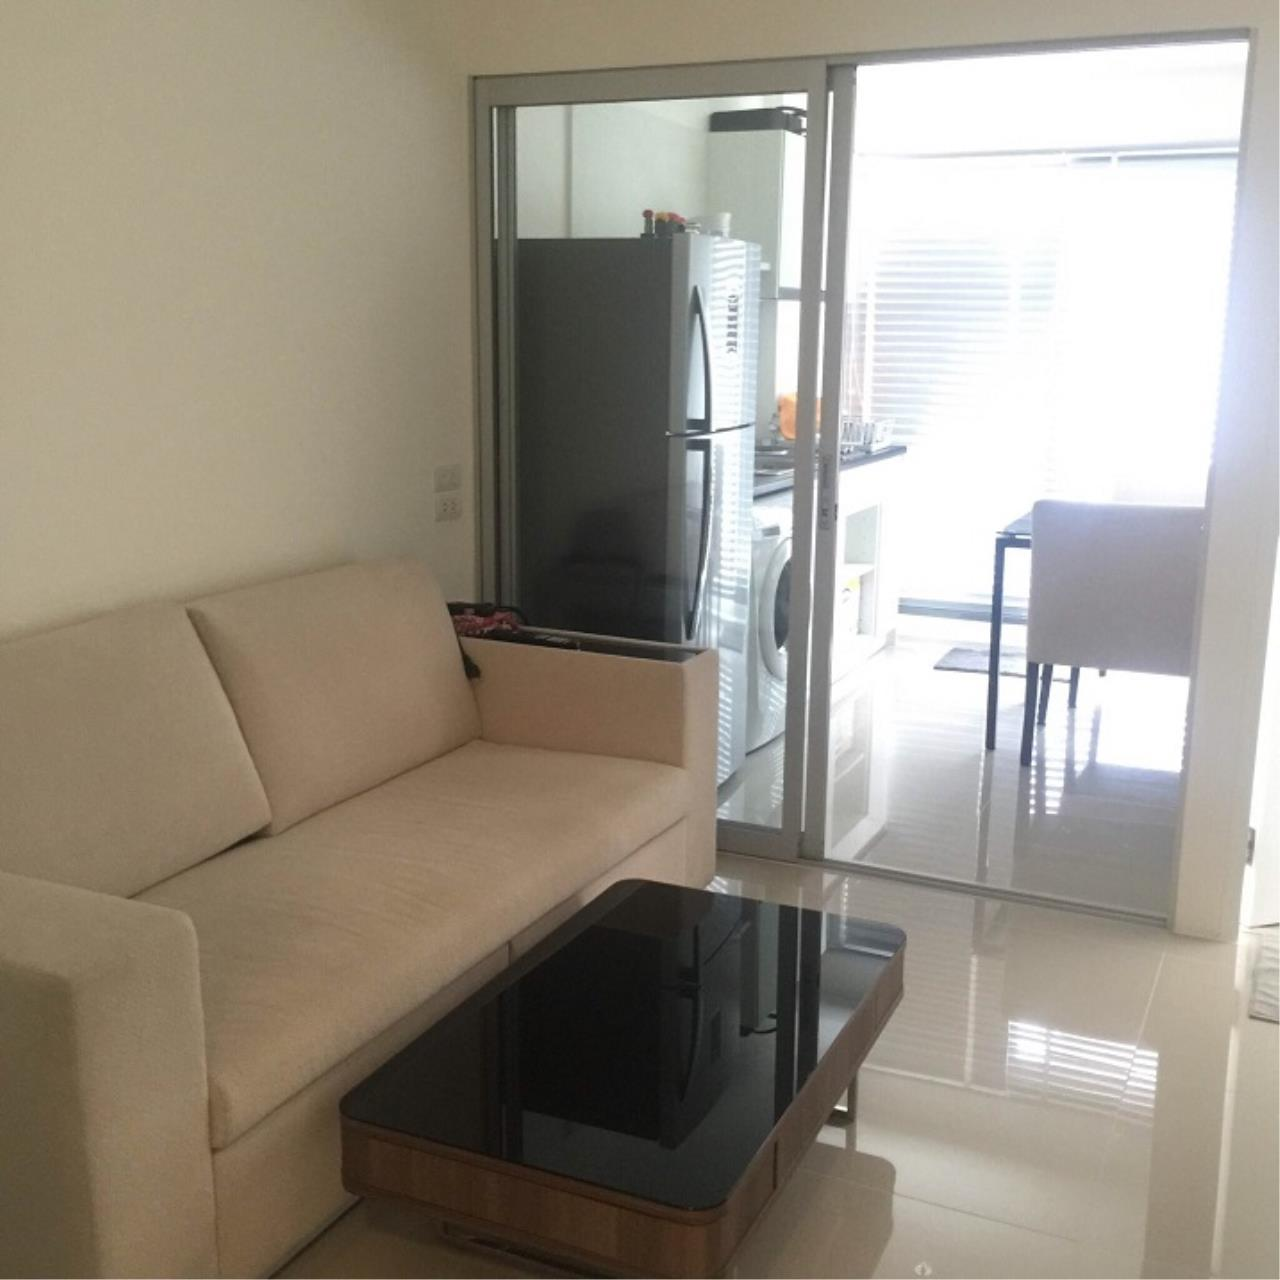 RE/MAX All Star Realty Agency's Aspire Sukhumvit Soi 48 condo rent one/two beds (BTS Phra Khanong) 1